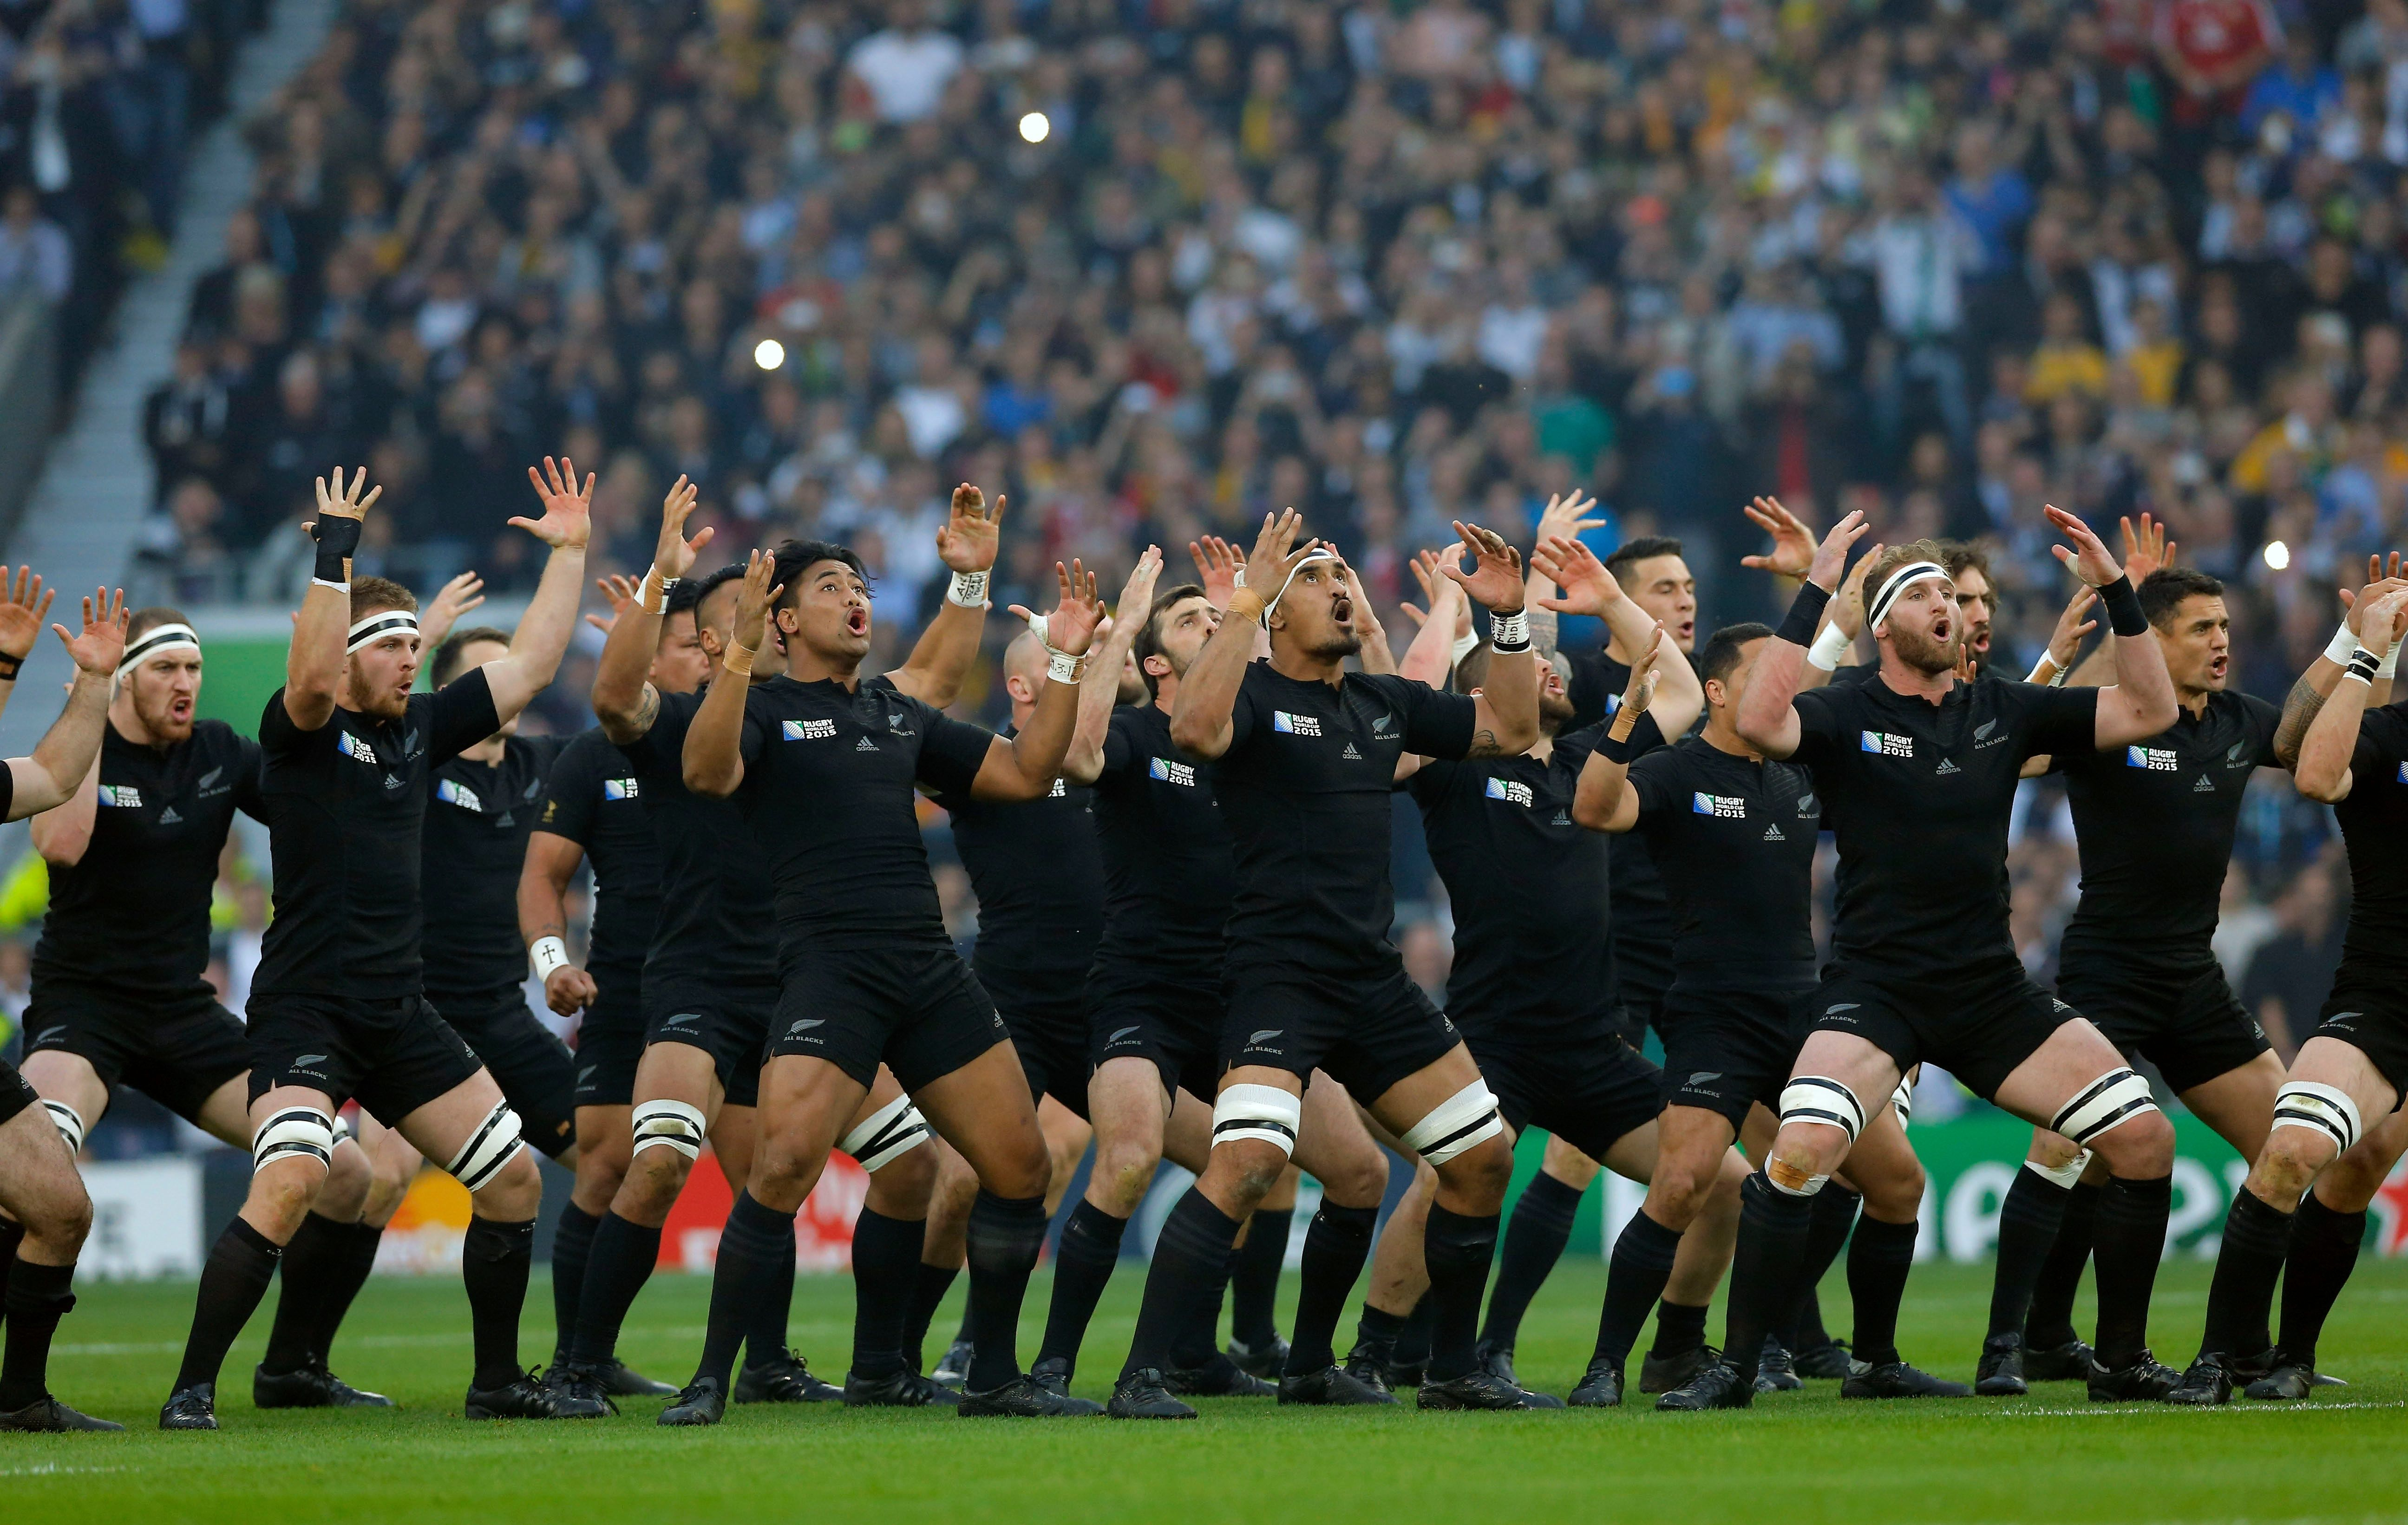 New Zealand V Australia Rugby World Cup 2015 Final In Pictures